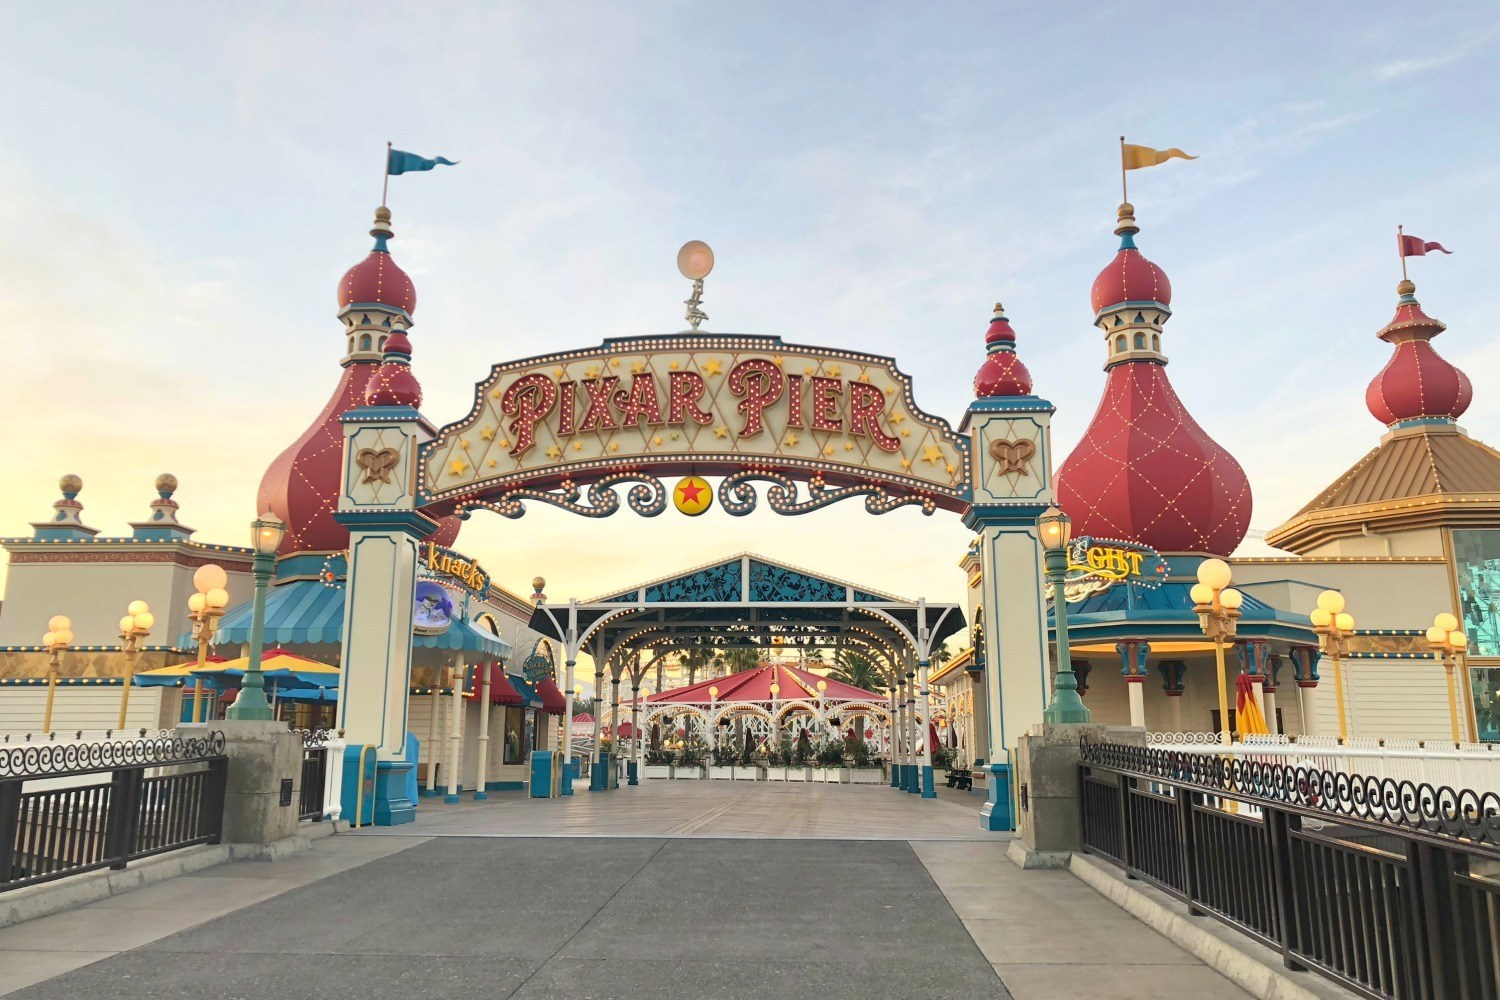 Skip the Lines at Disneyland: 10 Line-Busting Tips for Less Waiting and More Playing